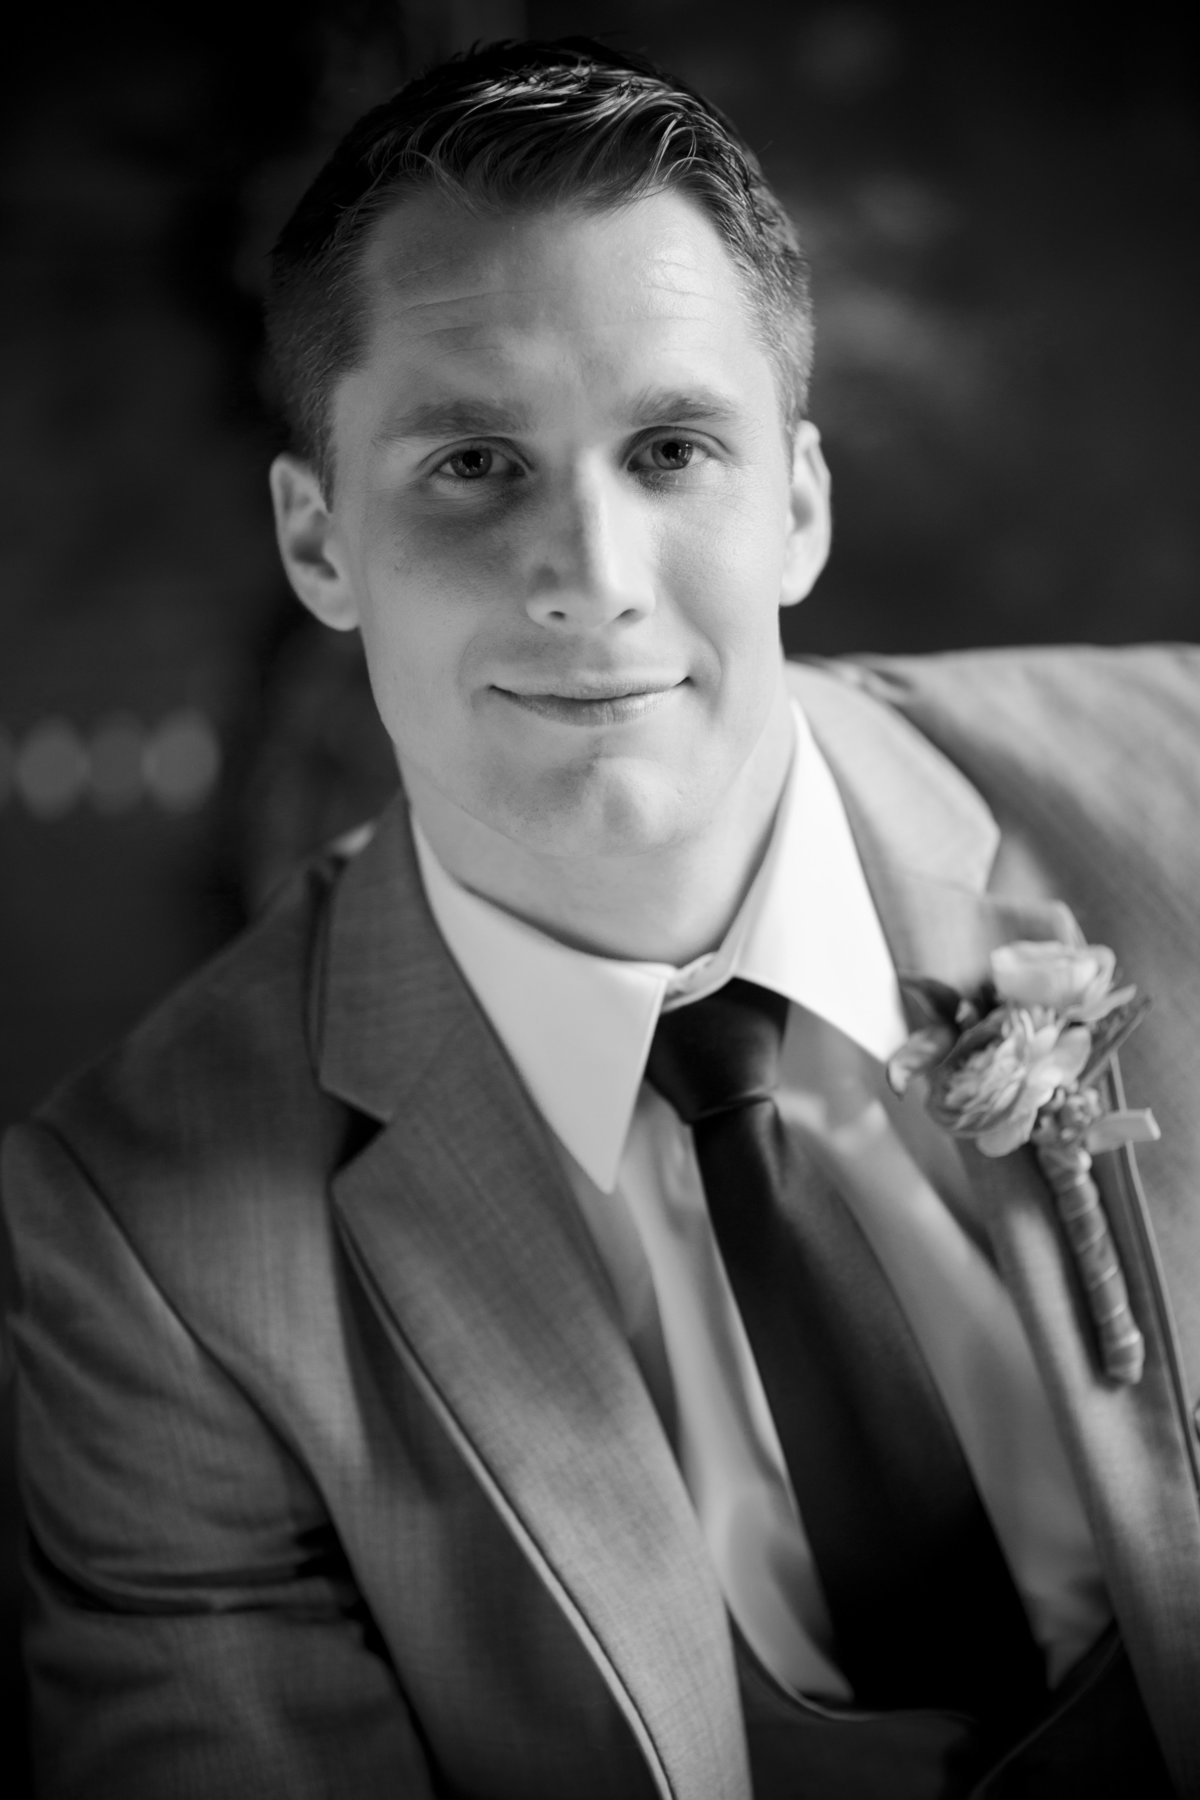 Black and White Portrait on Groom in Grey Suit, Alexandria Church Wedding